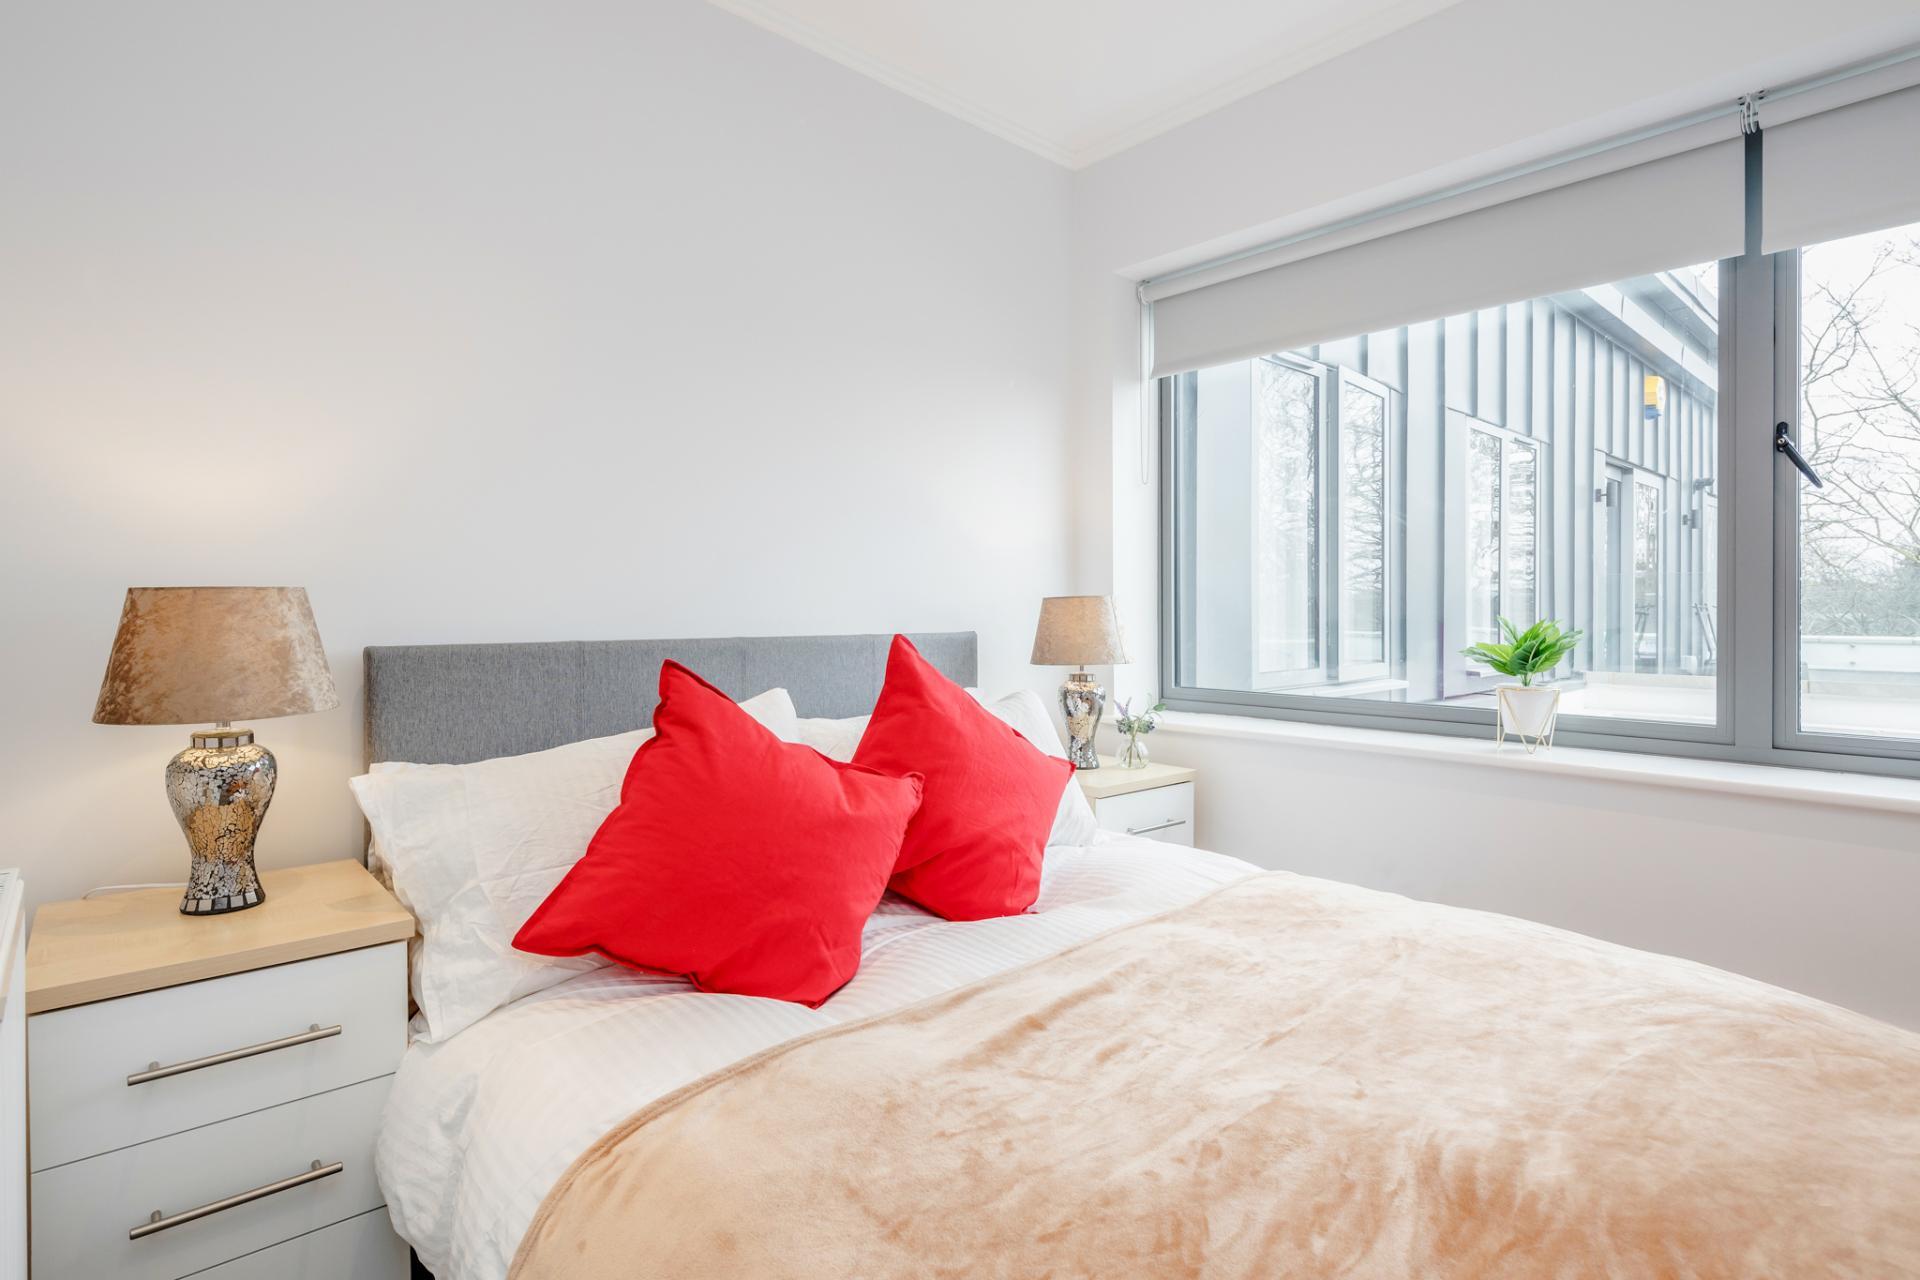 Bedding at Dudley House Apartments, Brentford, London - Citybase Apartments